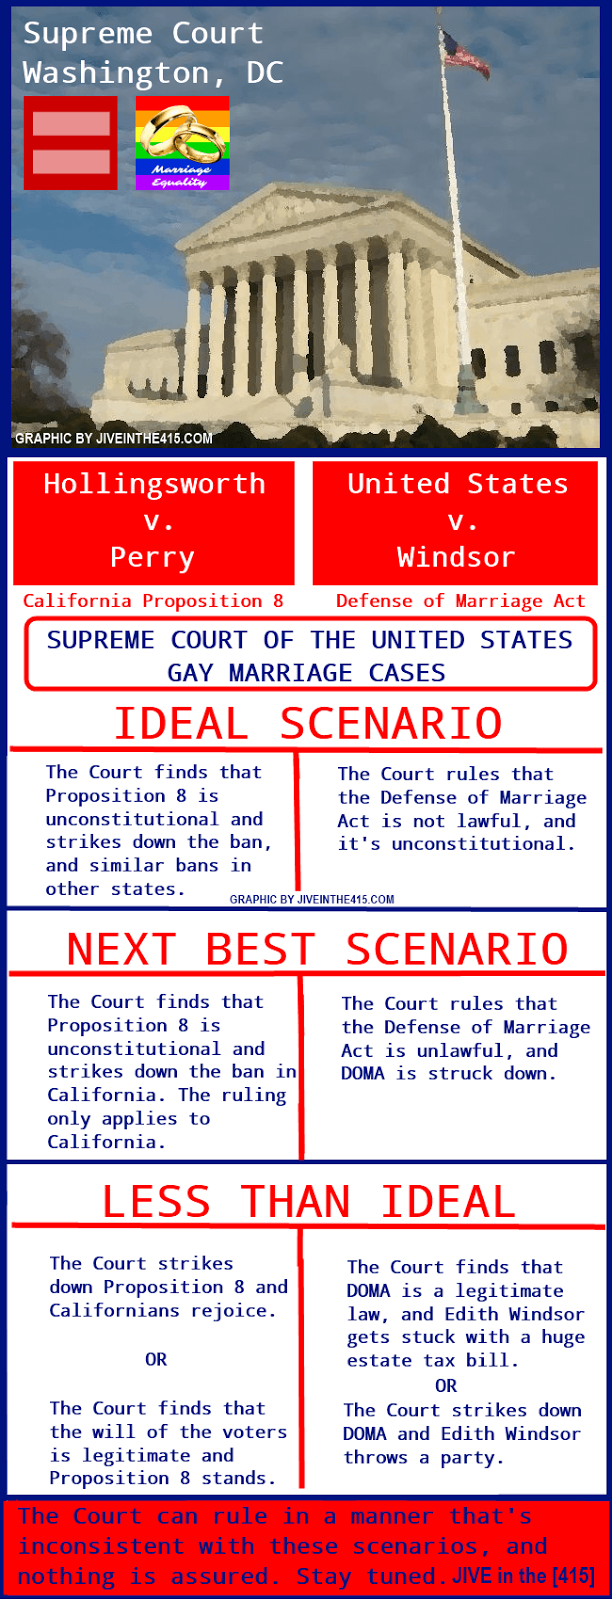 A graphic representation of the 2 gay marriage cases pending before the US Supreme Court.